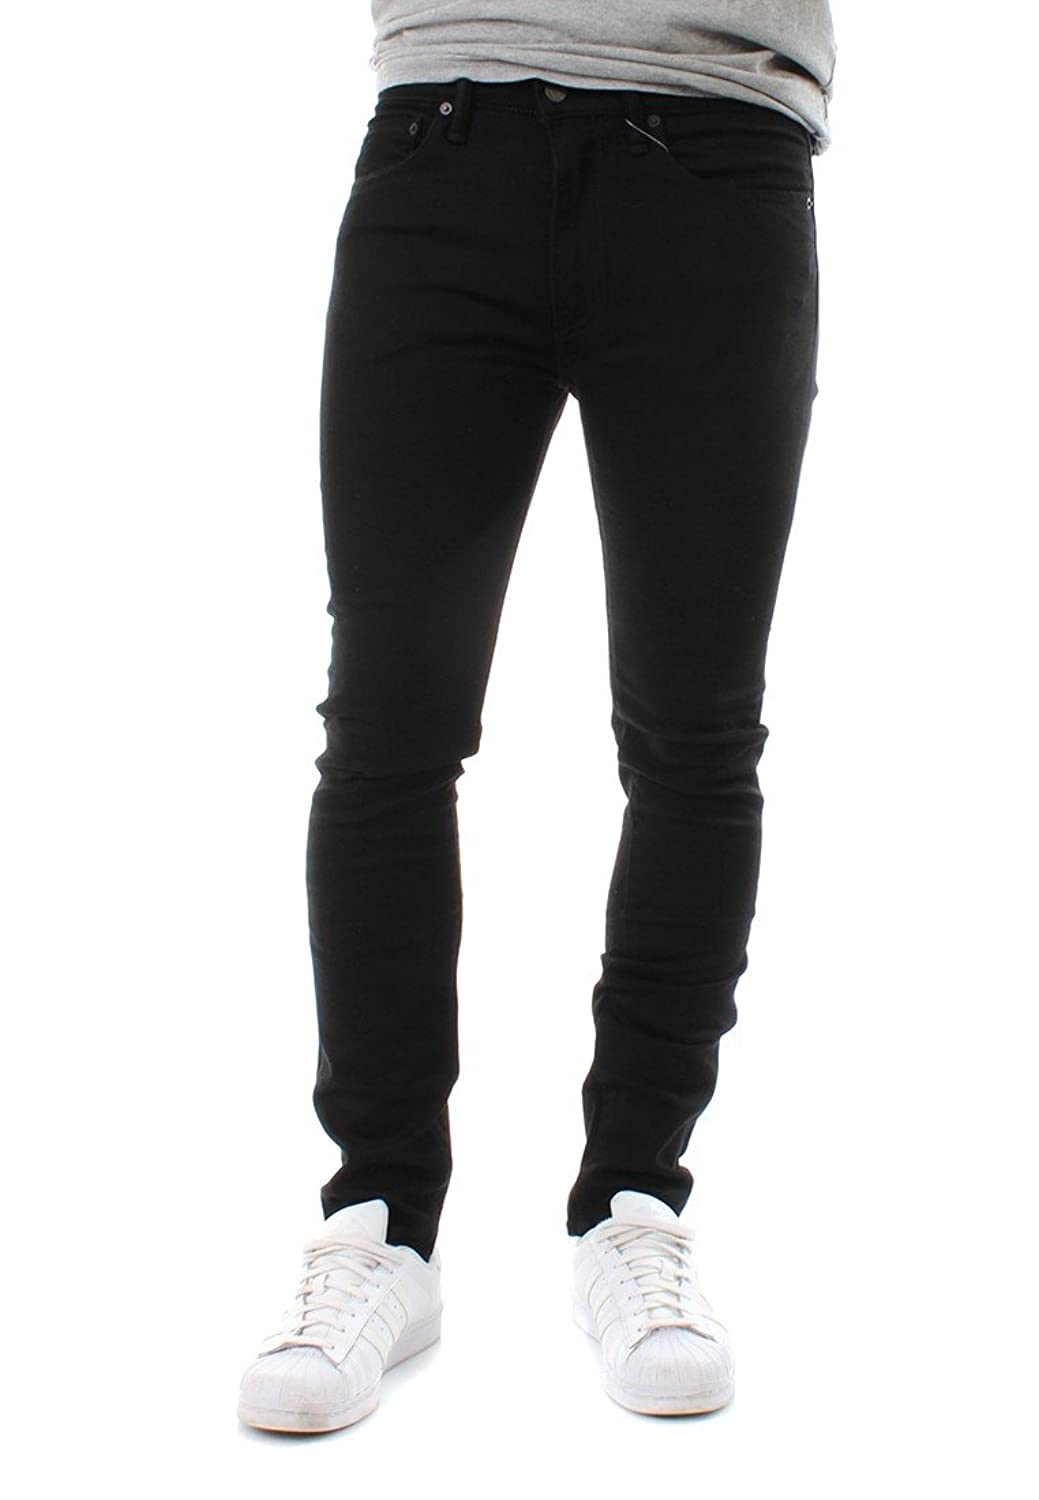 Levis Jeans Men 519 EXTREME SKINNY 24875-0005 Rooftop